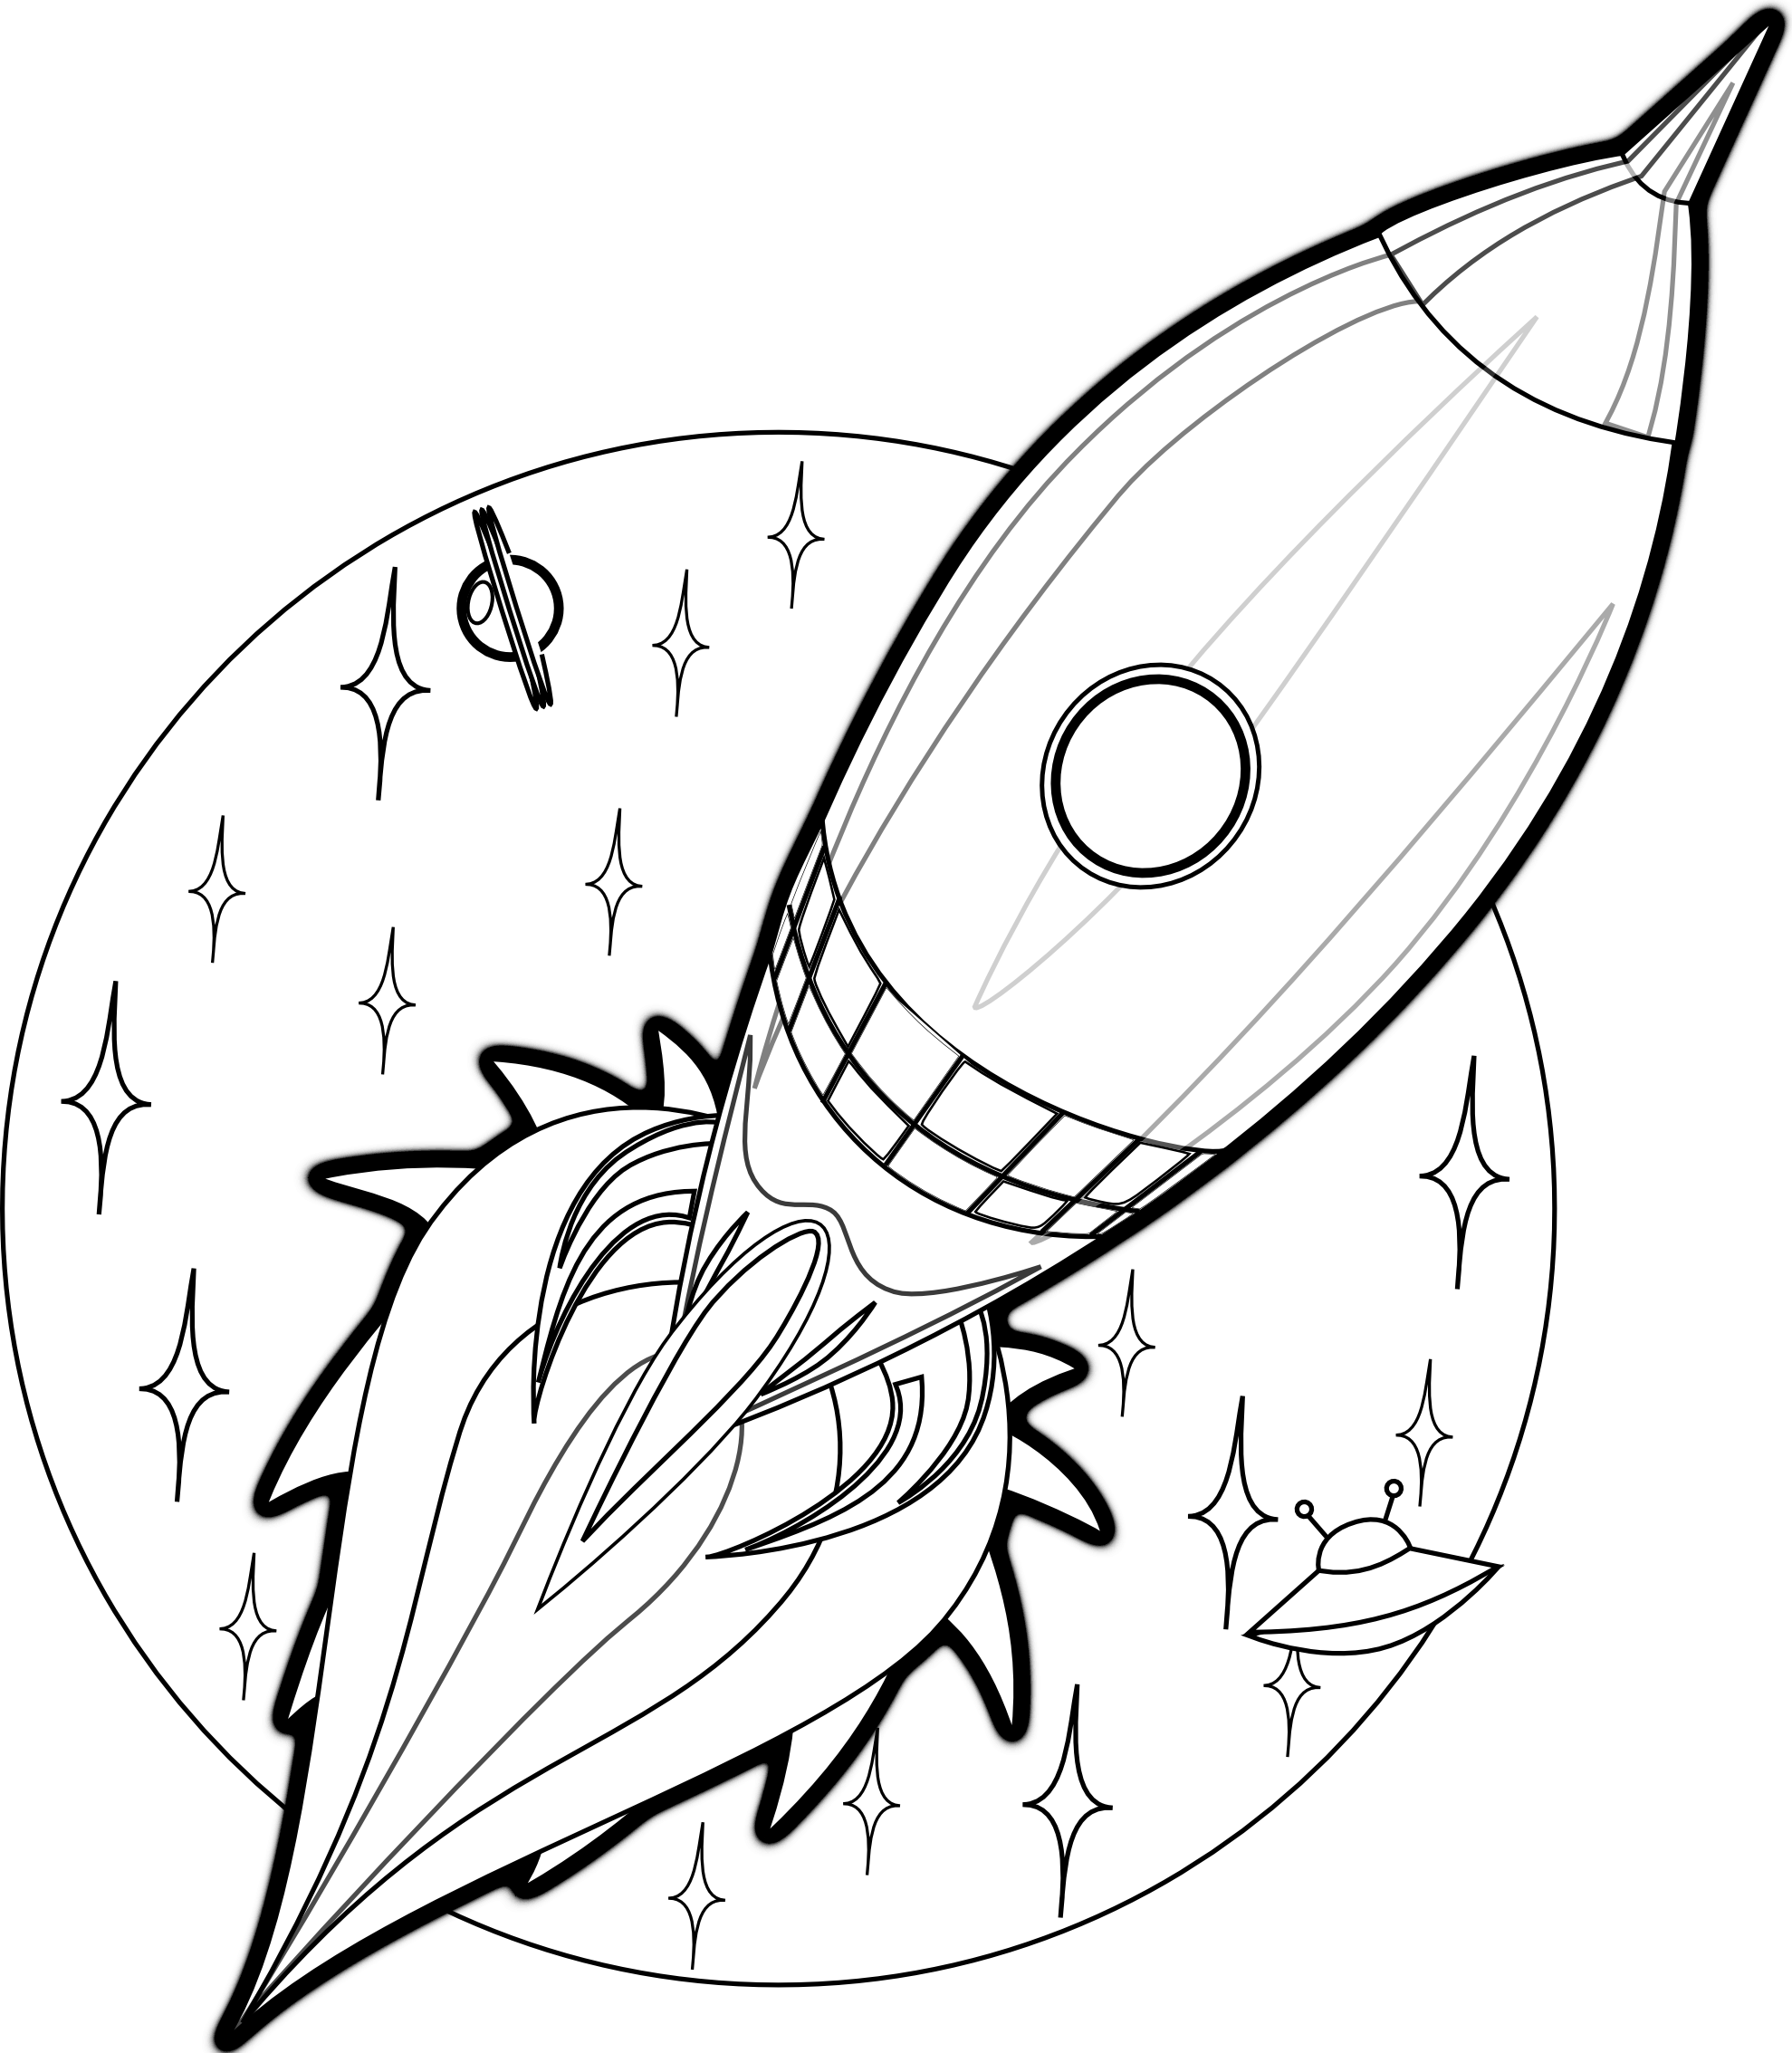 Free Printable Rocket Ship Coloring Pages For Kids Space Coloring Pages Printable Rocket Ship Coloring Pages